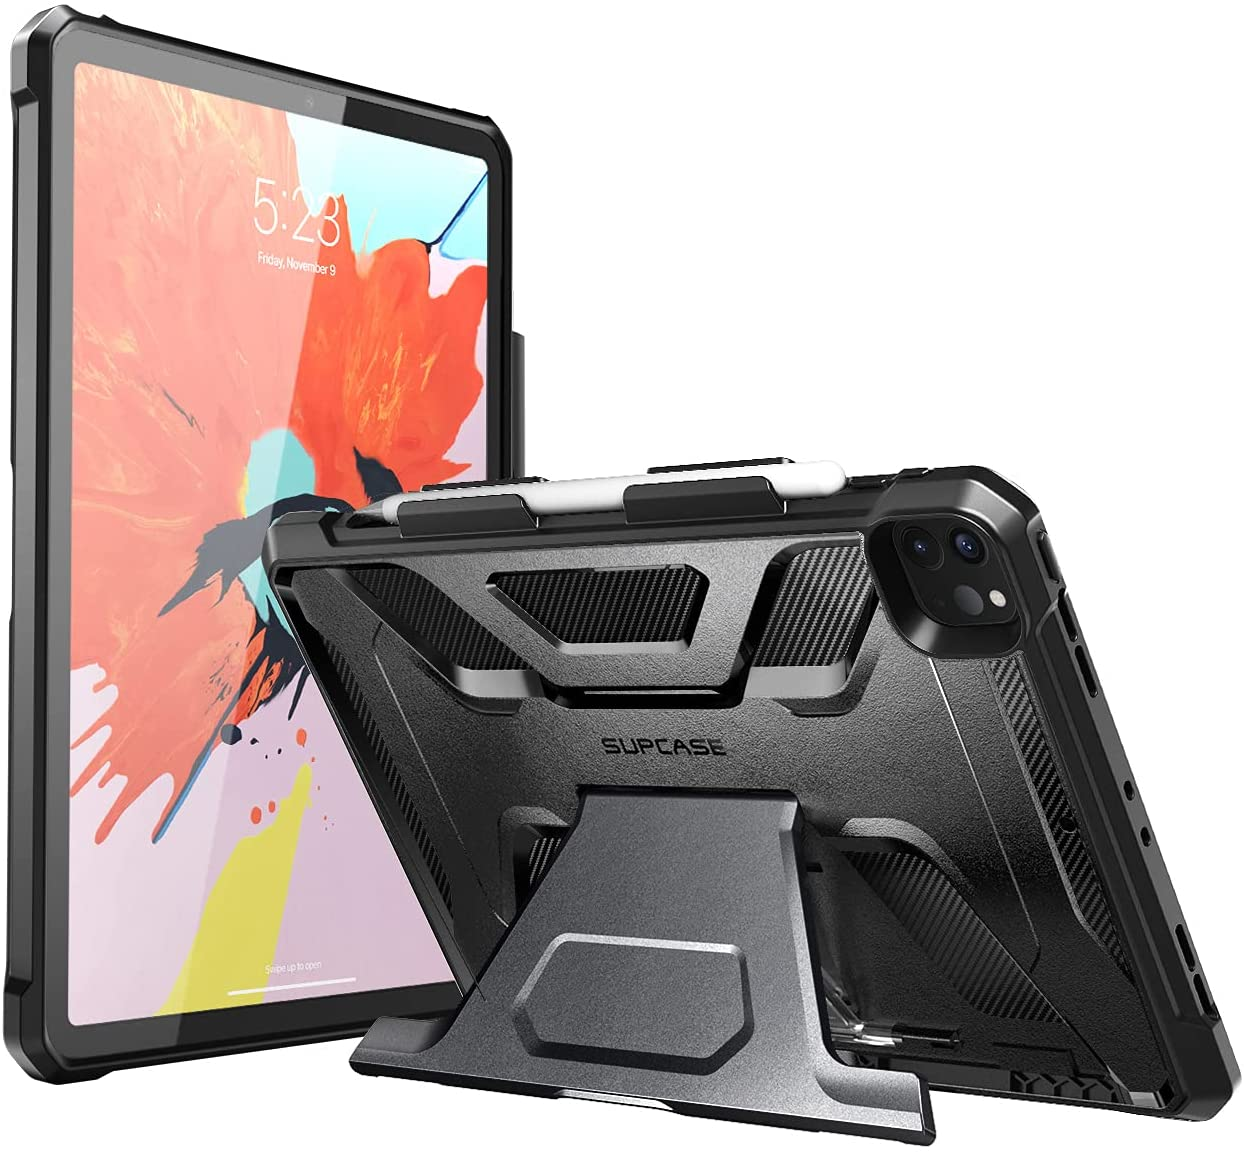 SUPCASE Unicorn Beetle Series Case for iPad Pro 12.9 inch ( 2021), with Built-in Apple Pencil Holder Full-Body Kickstand Rugged Protective Case for iPad Pro 12.9 5th (Black)